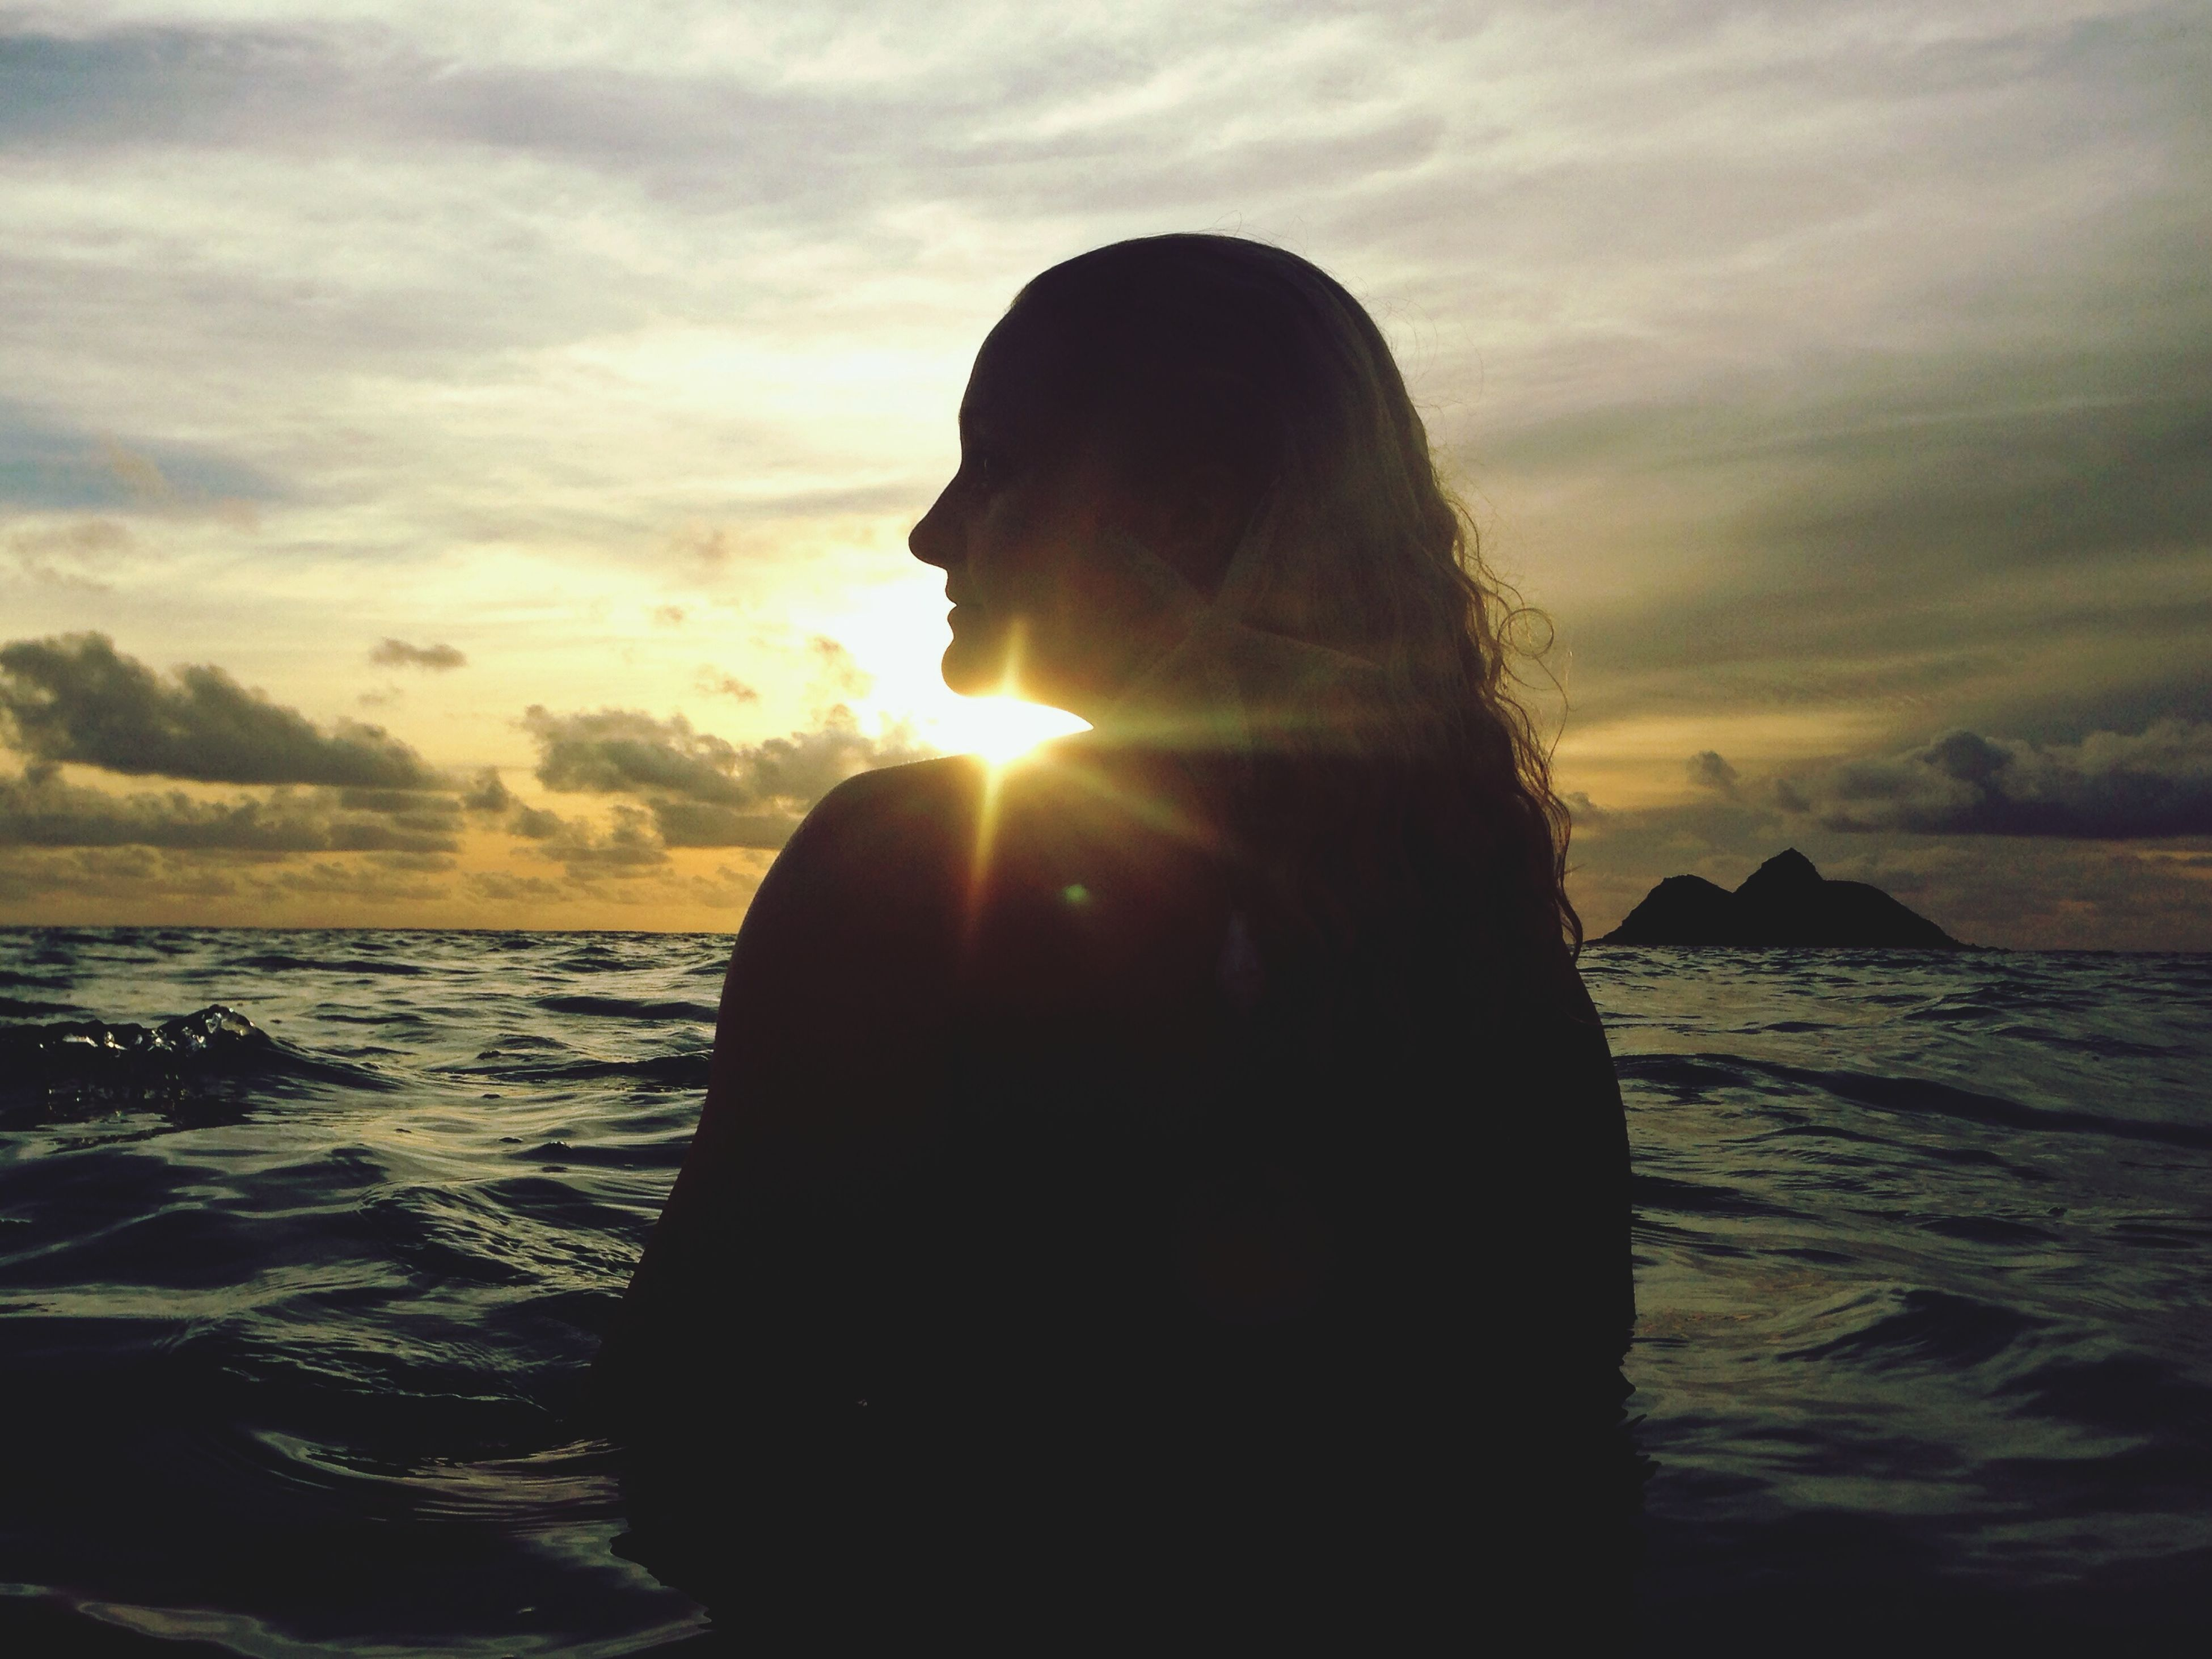 sunset, sky, sea, sun, water, beauty in nature, cloud - sky, scenics, tranquility, silhouette, tranquil scene, rock - object, nature, horizon over water, idyllic, sunbeam, one person, sunlight, cloud, rock formation